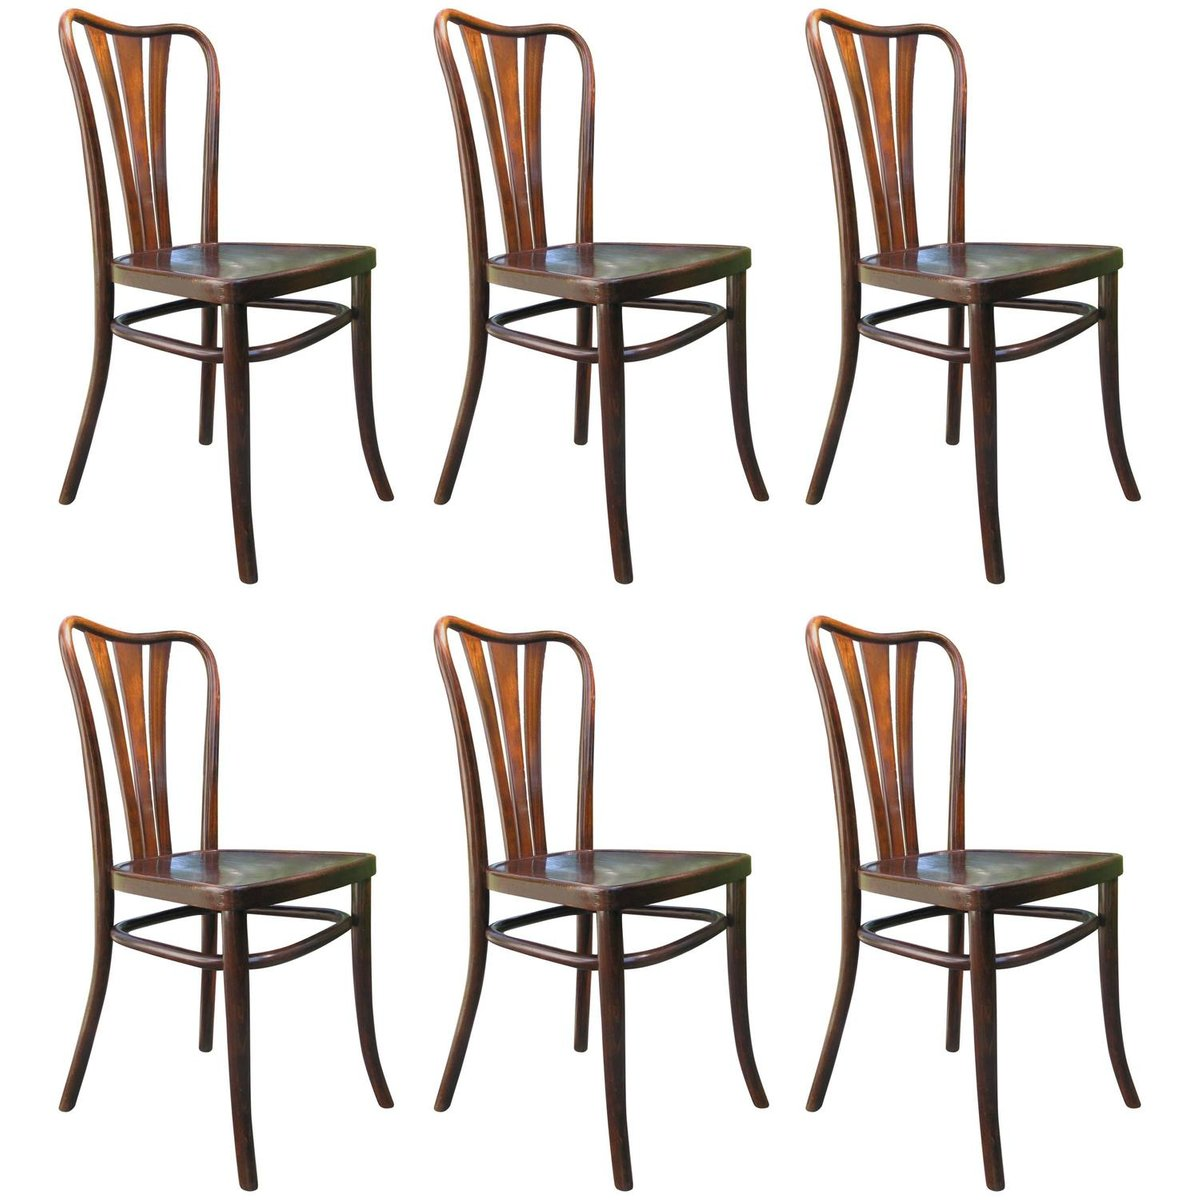 Vintage Dining Chairs From Thonet, 1930s, Set Of 6 For Sale At Pamono